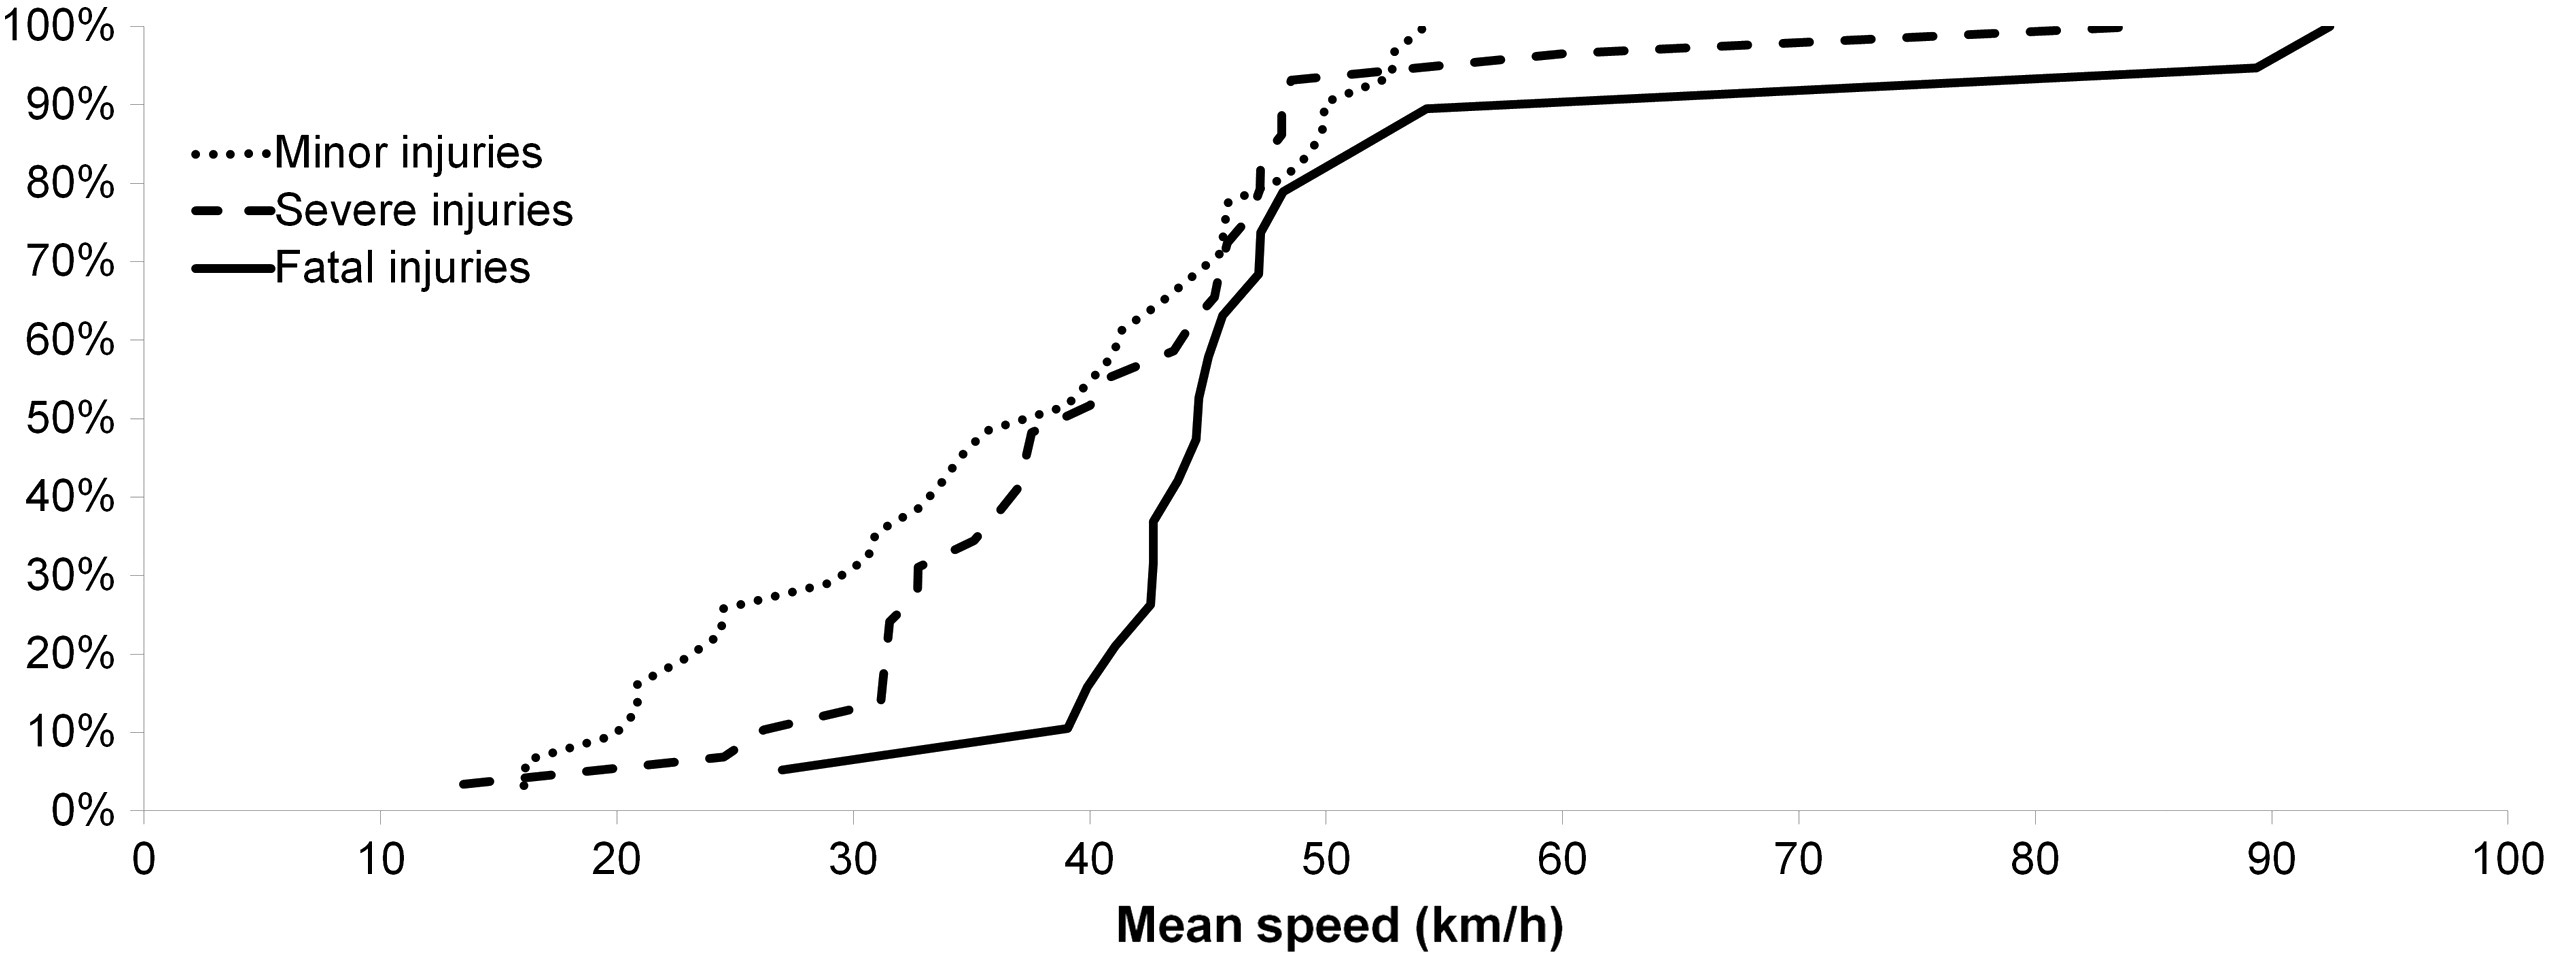 Speed-Fatality Curve